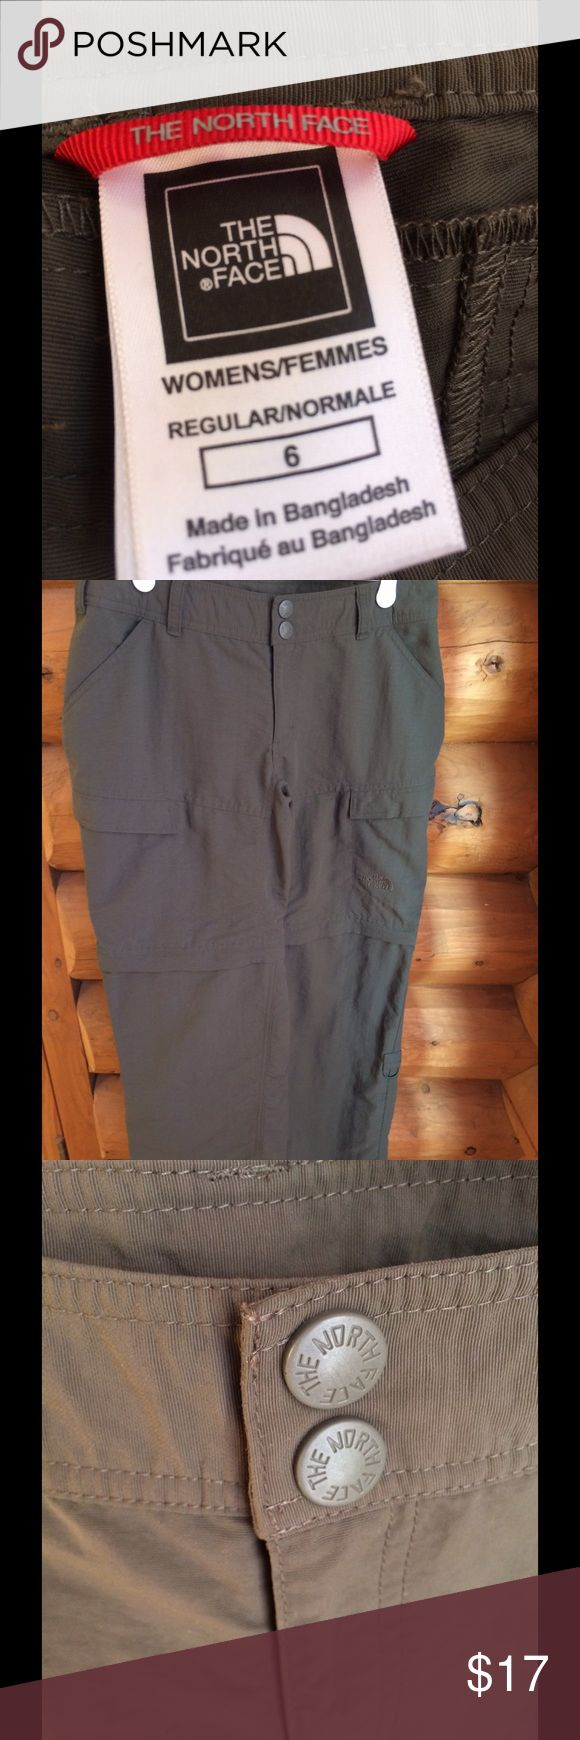 North Face fatigue green pants Like new North Face fatigue green hiking pants size 6. Zip off legs. Four front pockets; two slash, two Velcro flap pockets. Lower leg ring on each leg for rolling up. North Face Pants Track Pants & Joggers